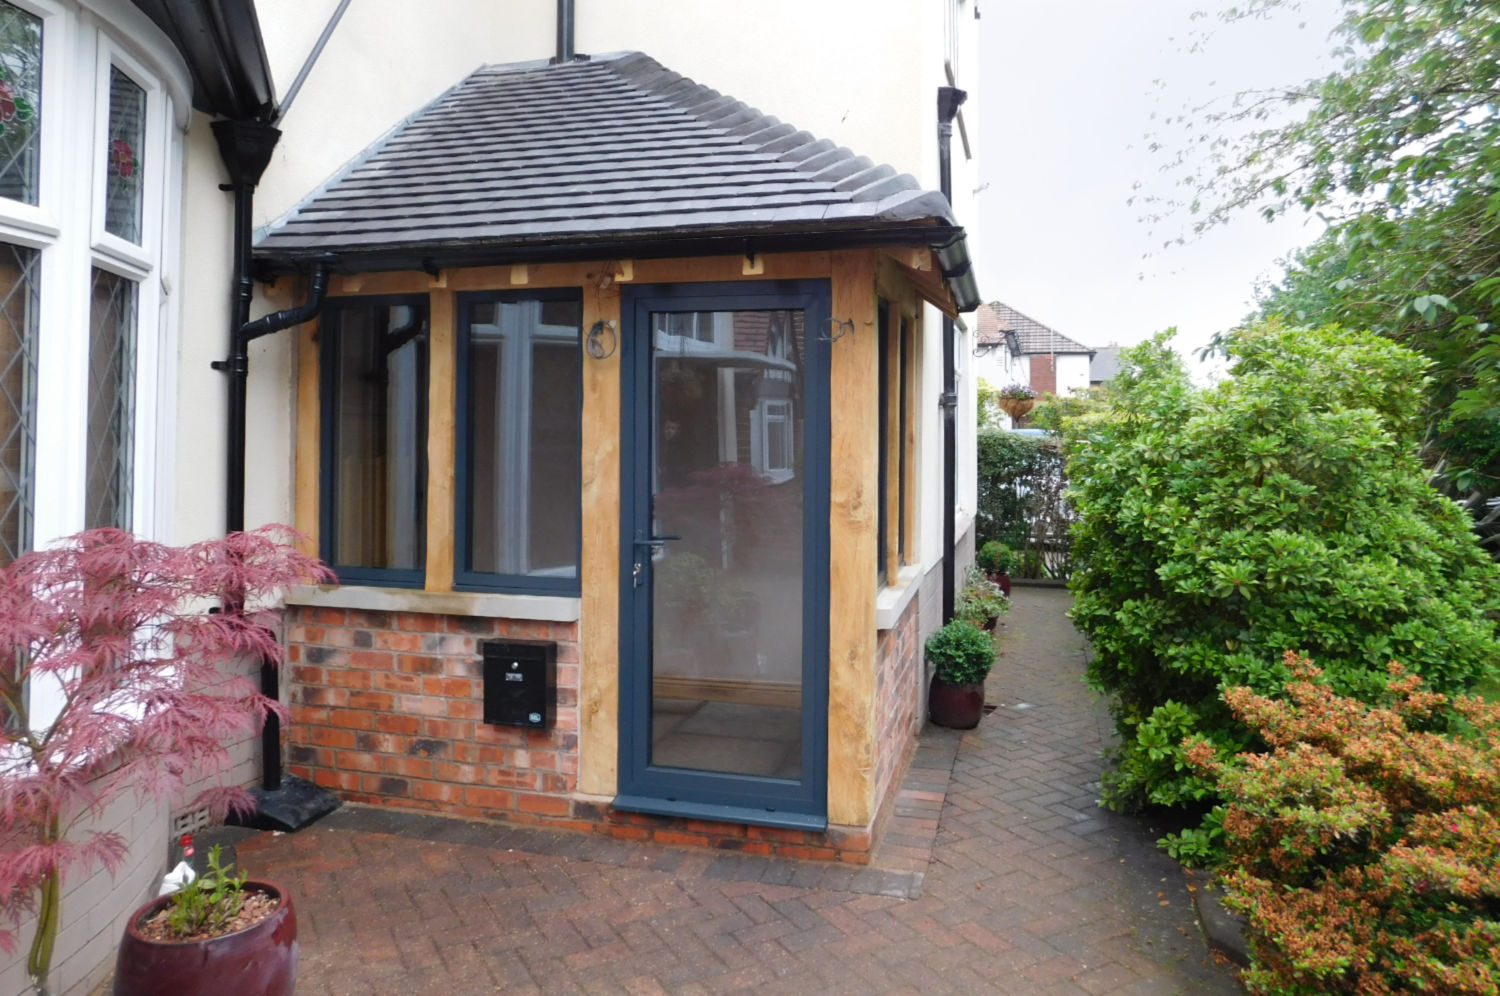 Enclosed Porch, oak frame, dwarf brick wall, hipped roof, aluminium windows, Leigh, Wigan, Oak Carpentry, Lancs, North West